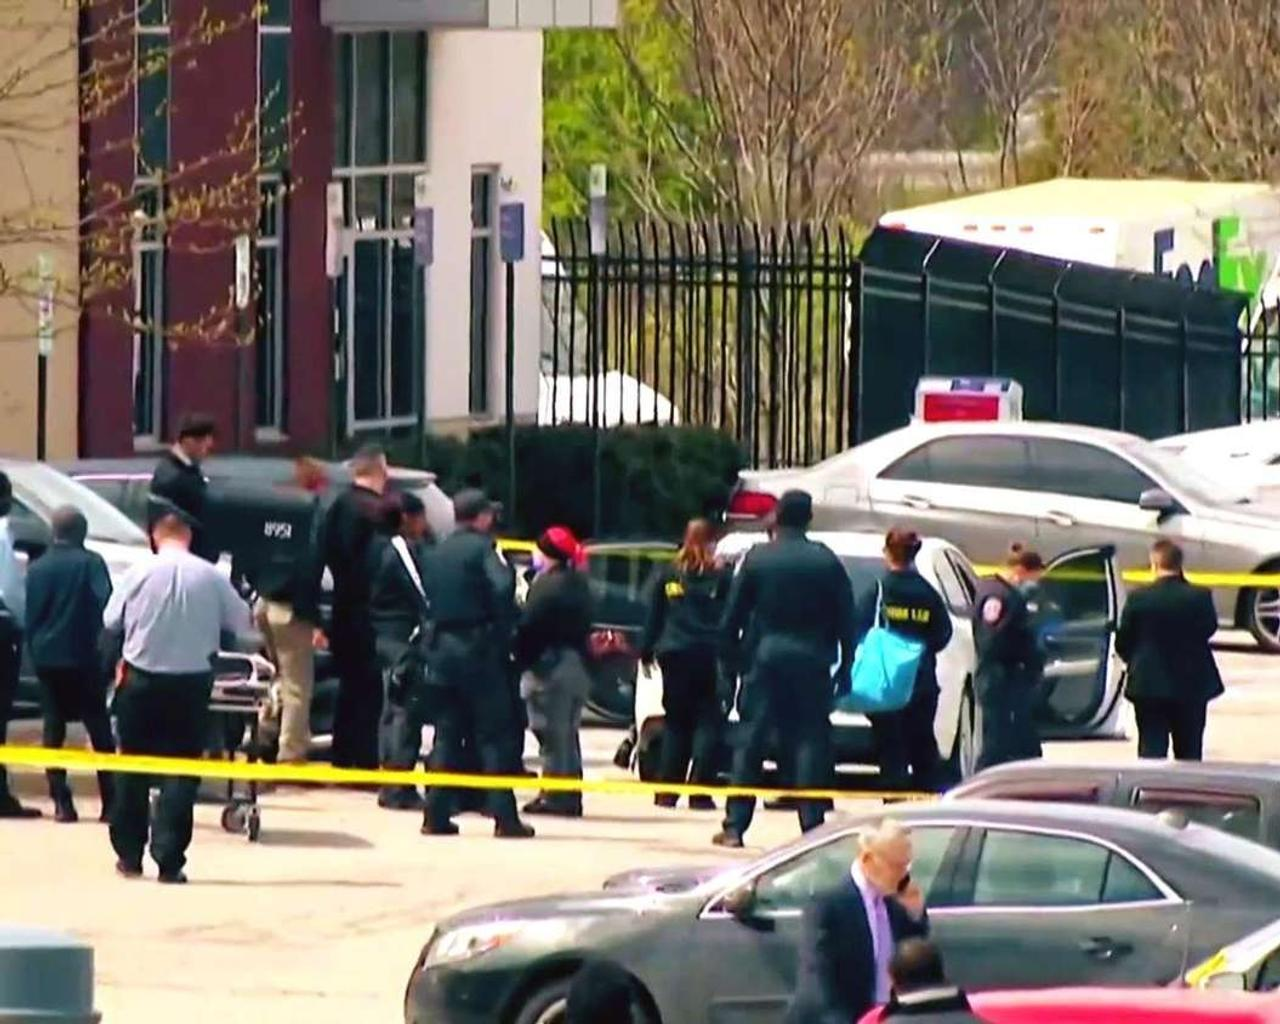 Sikh community mourns loss of four in Indianapolis FedEx mass shooting